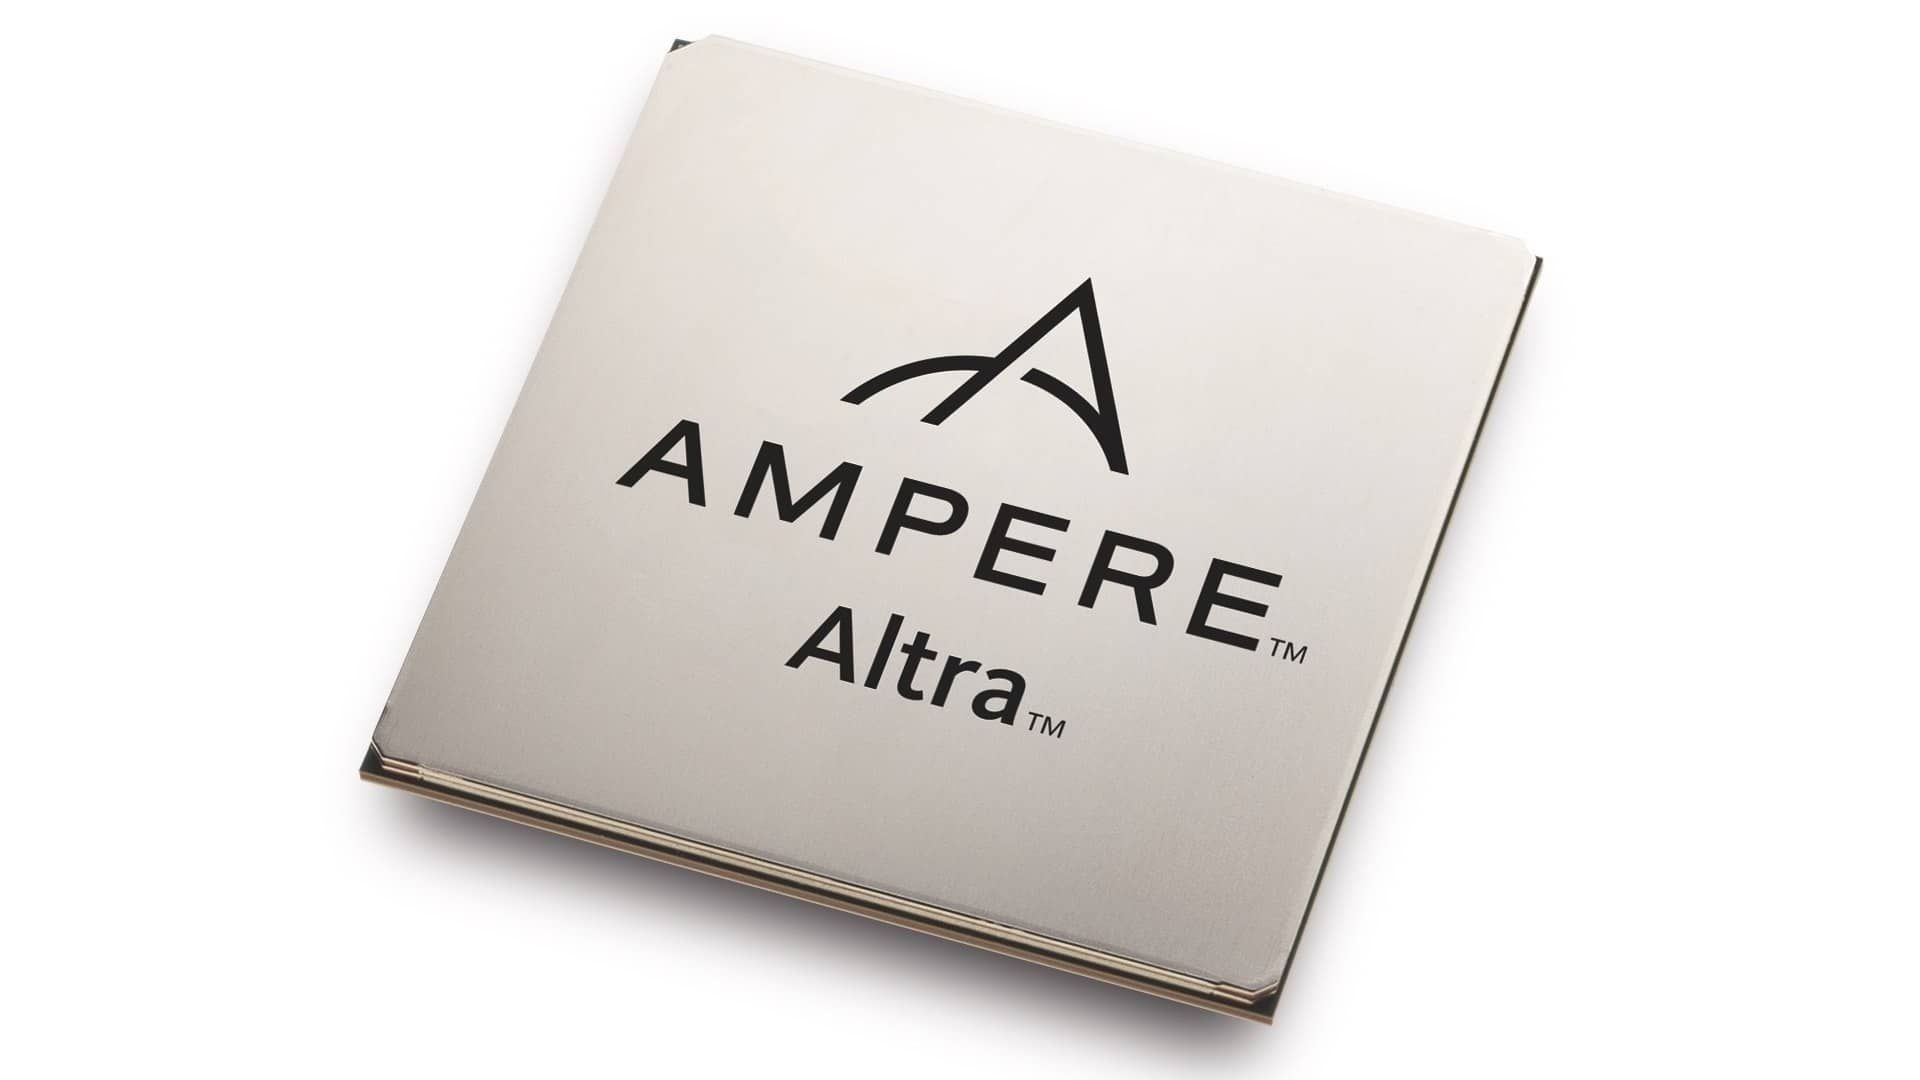 ARM procesory pro servery Ampere Altra a Altra Max